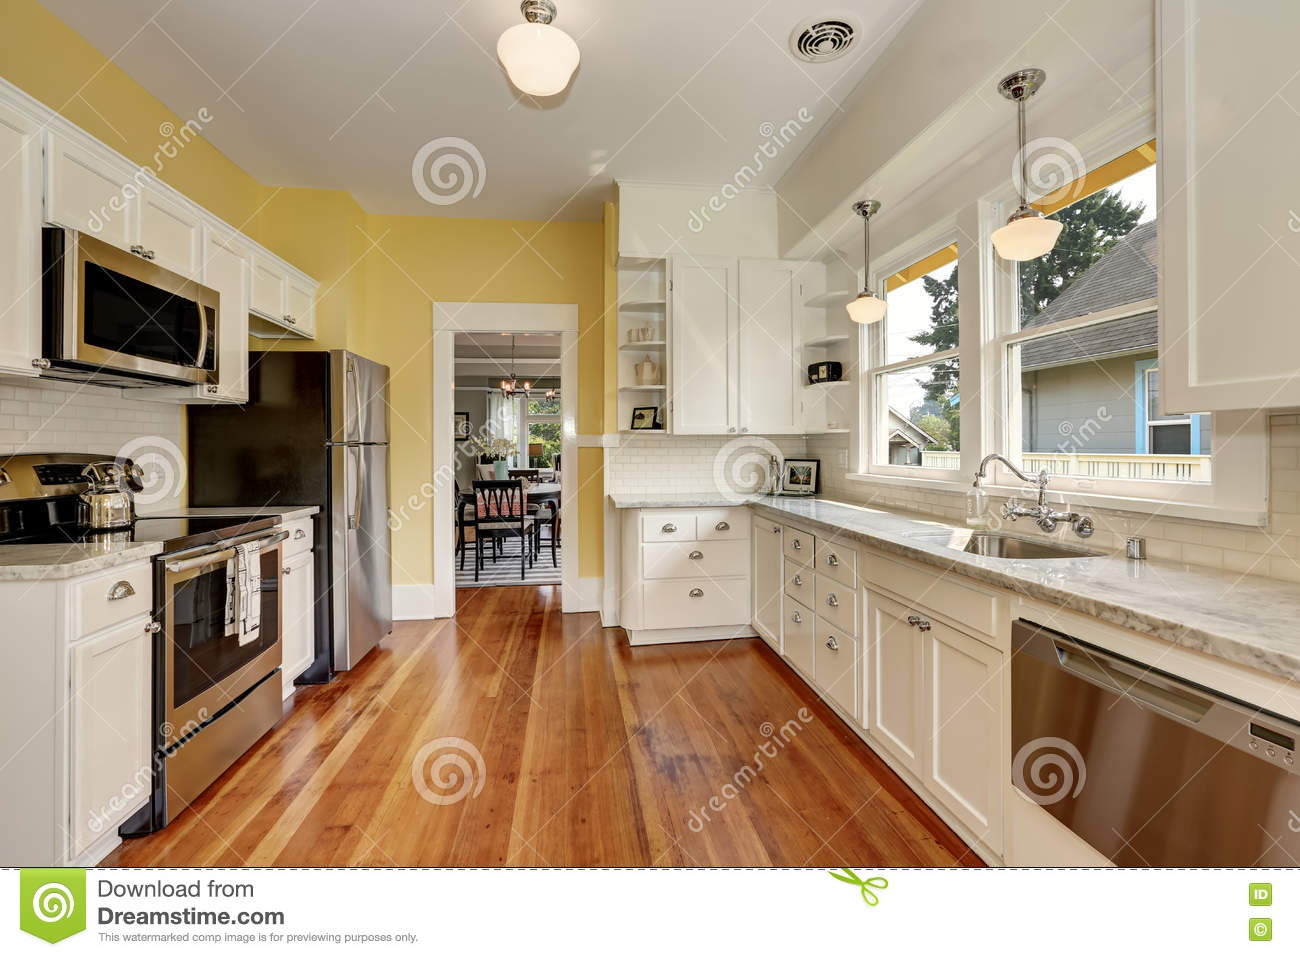 kitchen interior with white cabinets yellow walls and wood floor stock photo image of. Black Bedroom Furniture Sets. Home Design Ideas